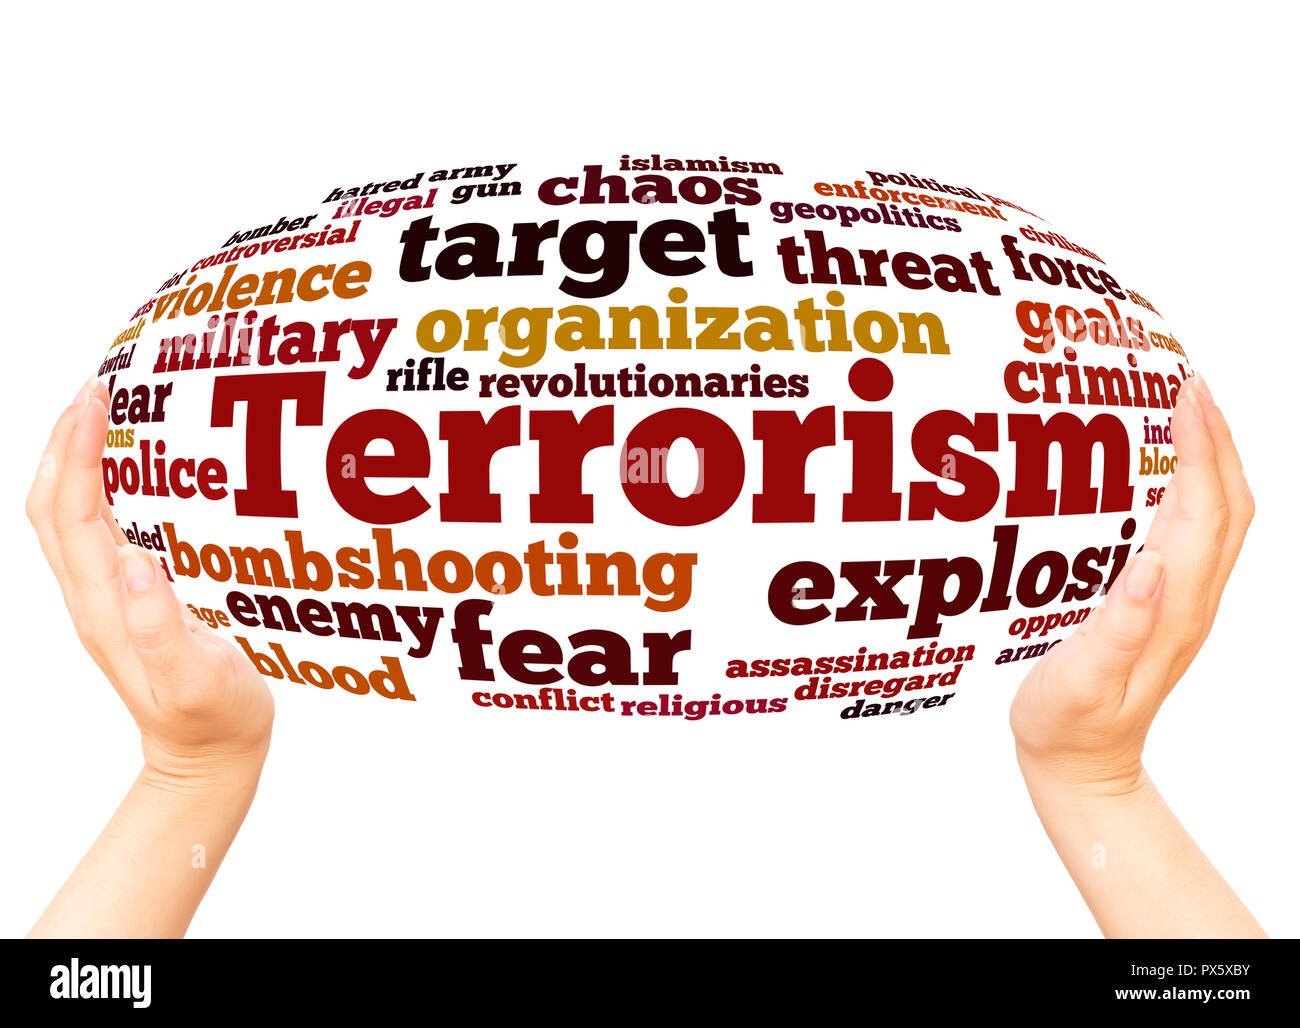 Terrorism word cloud hand sphere concept on white background. - Stock Image